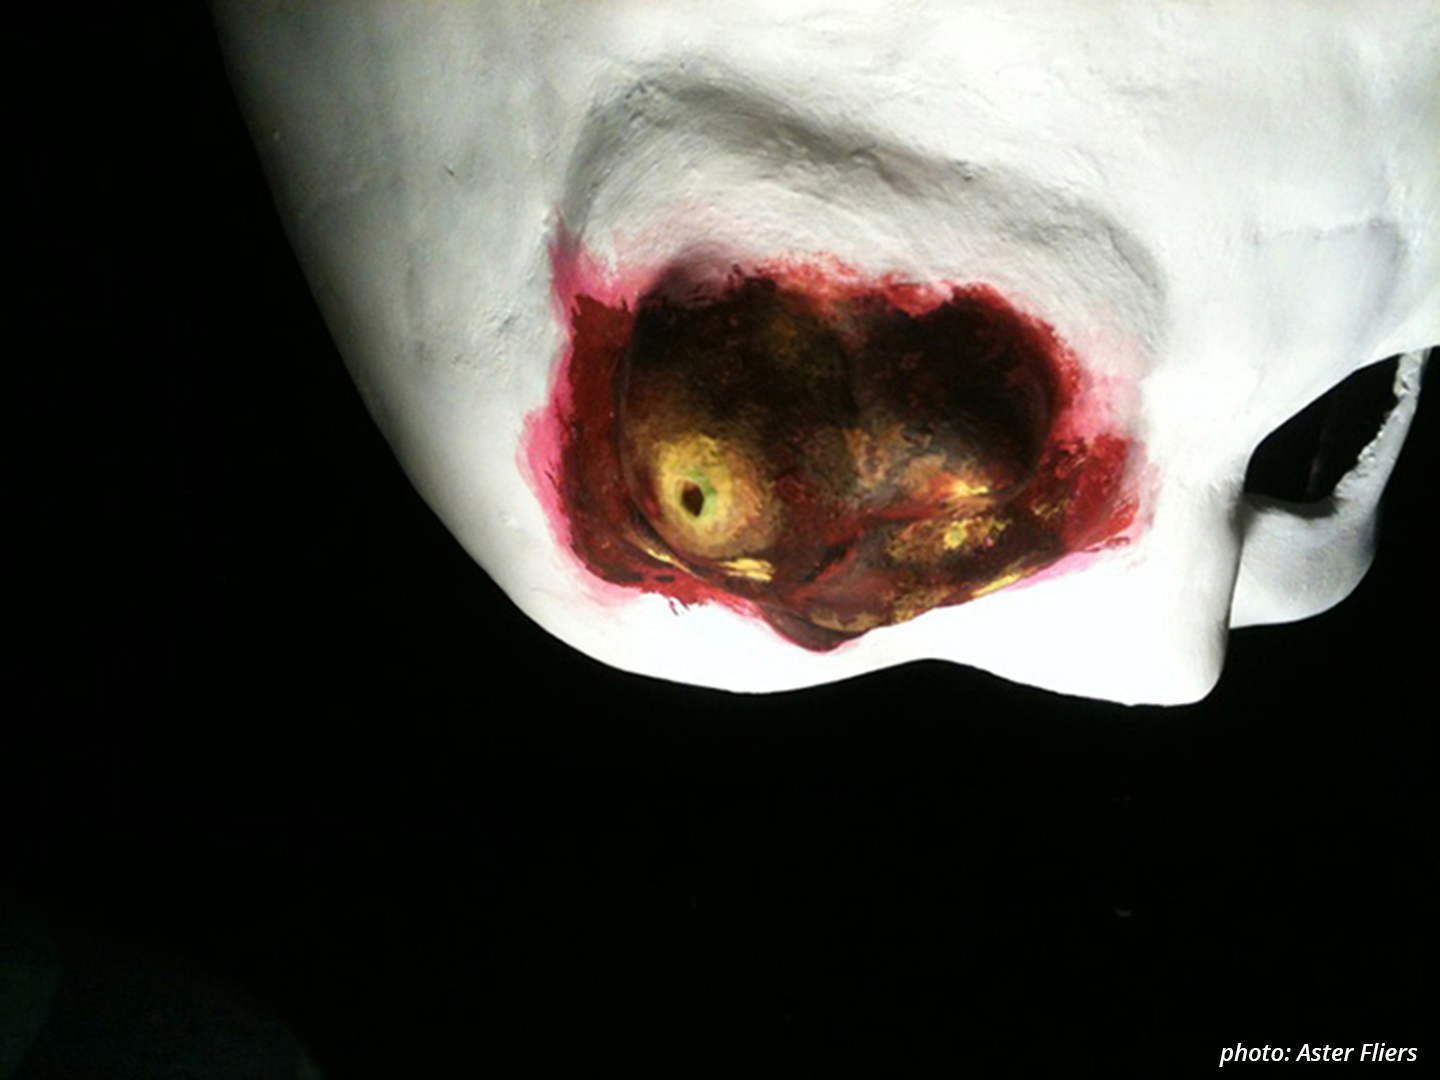 Picture showing the close up of a white mask against a black background. The mask has one eye similar in shape to traditional Venetian masks that only cover the forehead and a little underneath the eye. The other, left eye is covered by a rough bump the colour of dried blood and infected skin, with a yellow and green pustule on top.